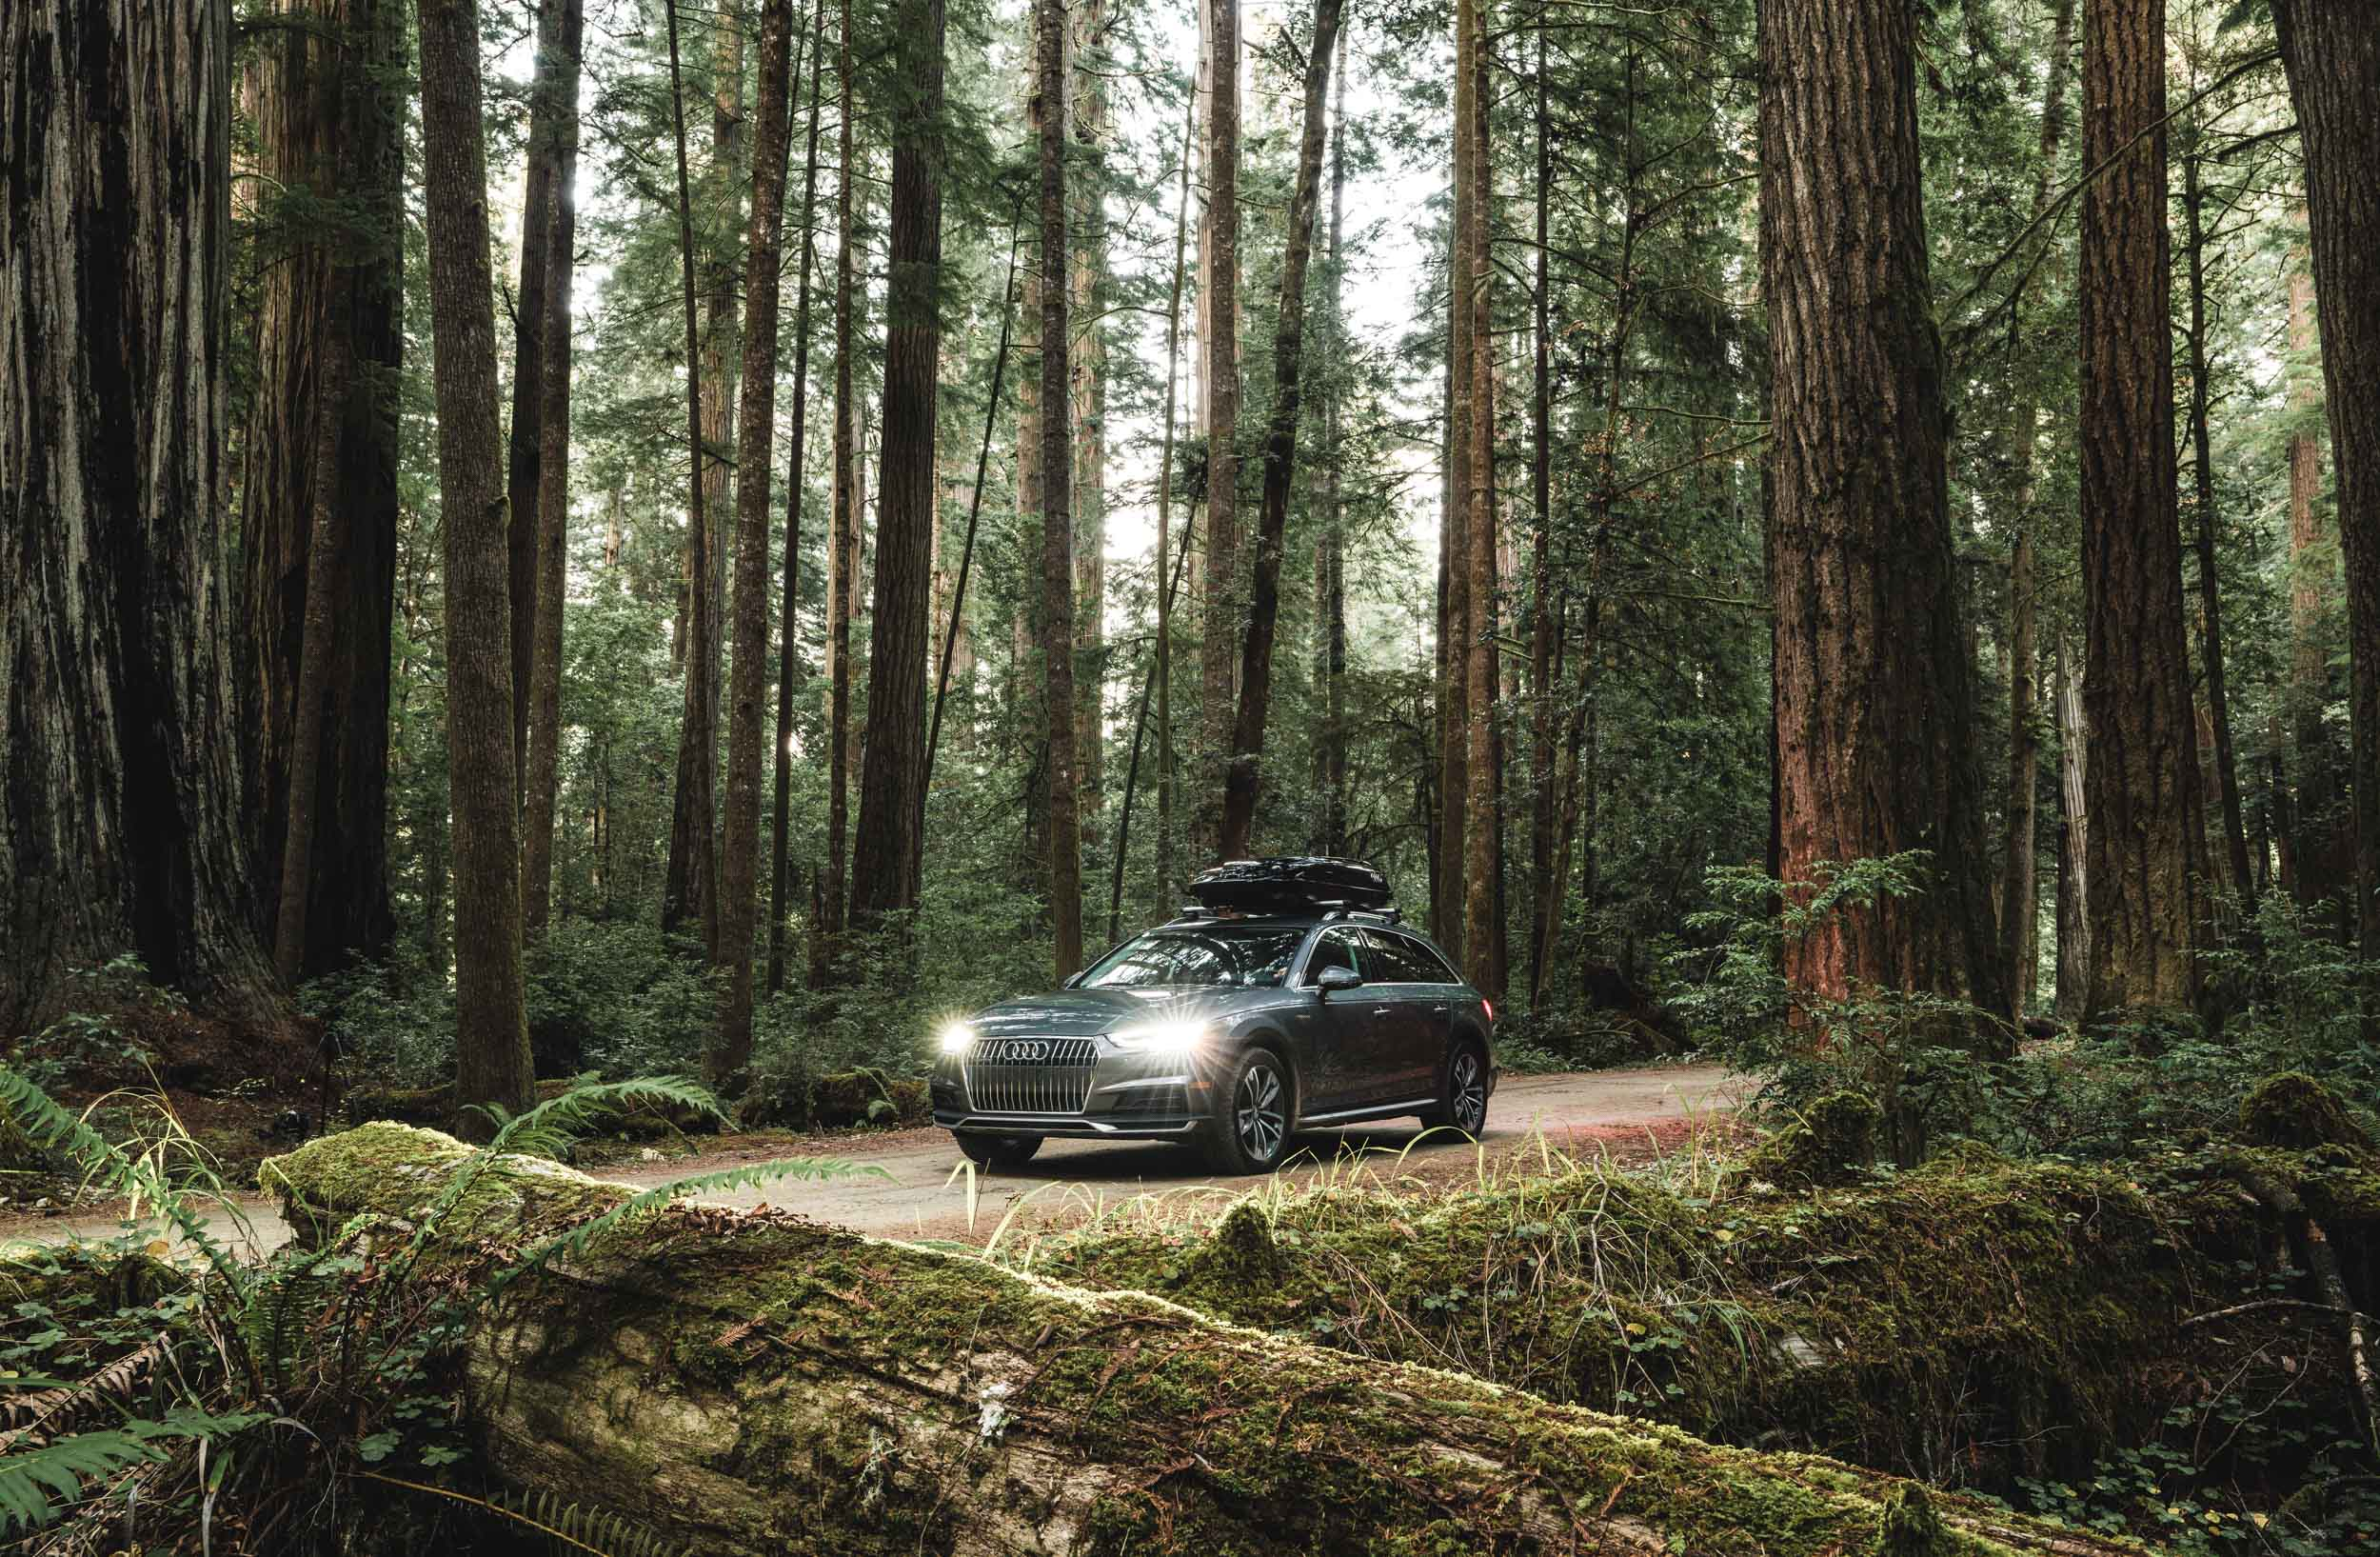 Silver Audi Allroad with headlights on sits on road in a dark and mossy redwood forest